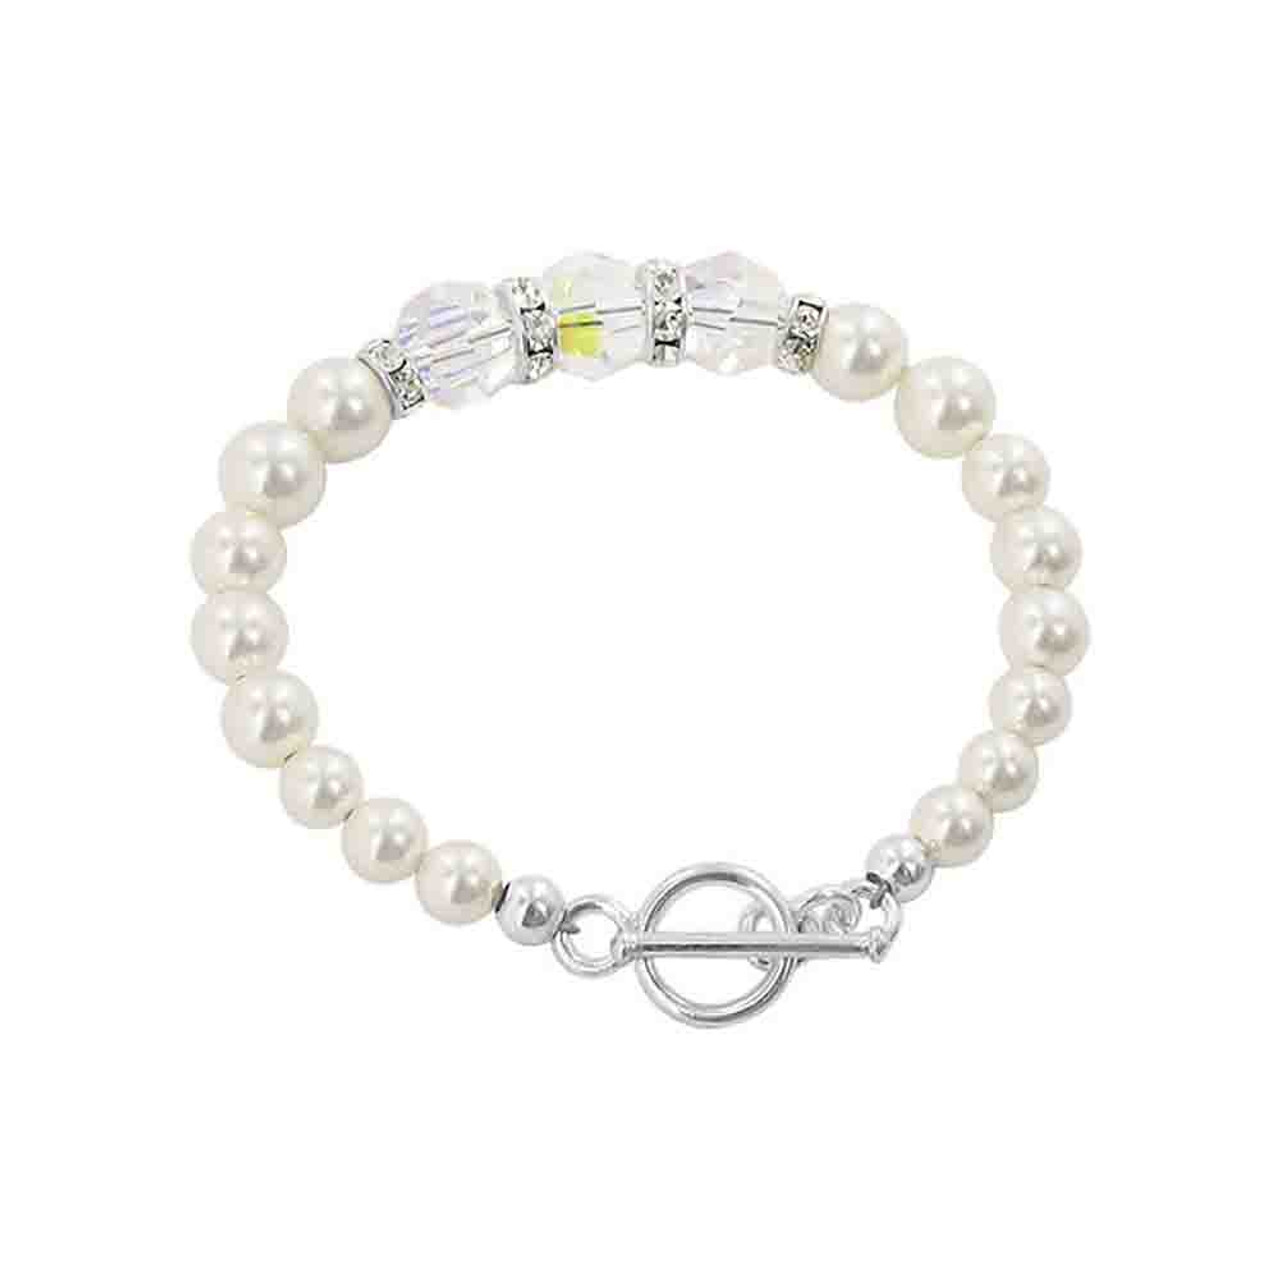 Silver White Pearl with Clear AB Swarovski Crystal Bracelet